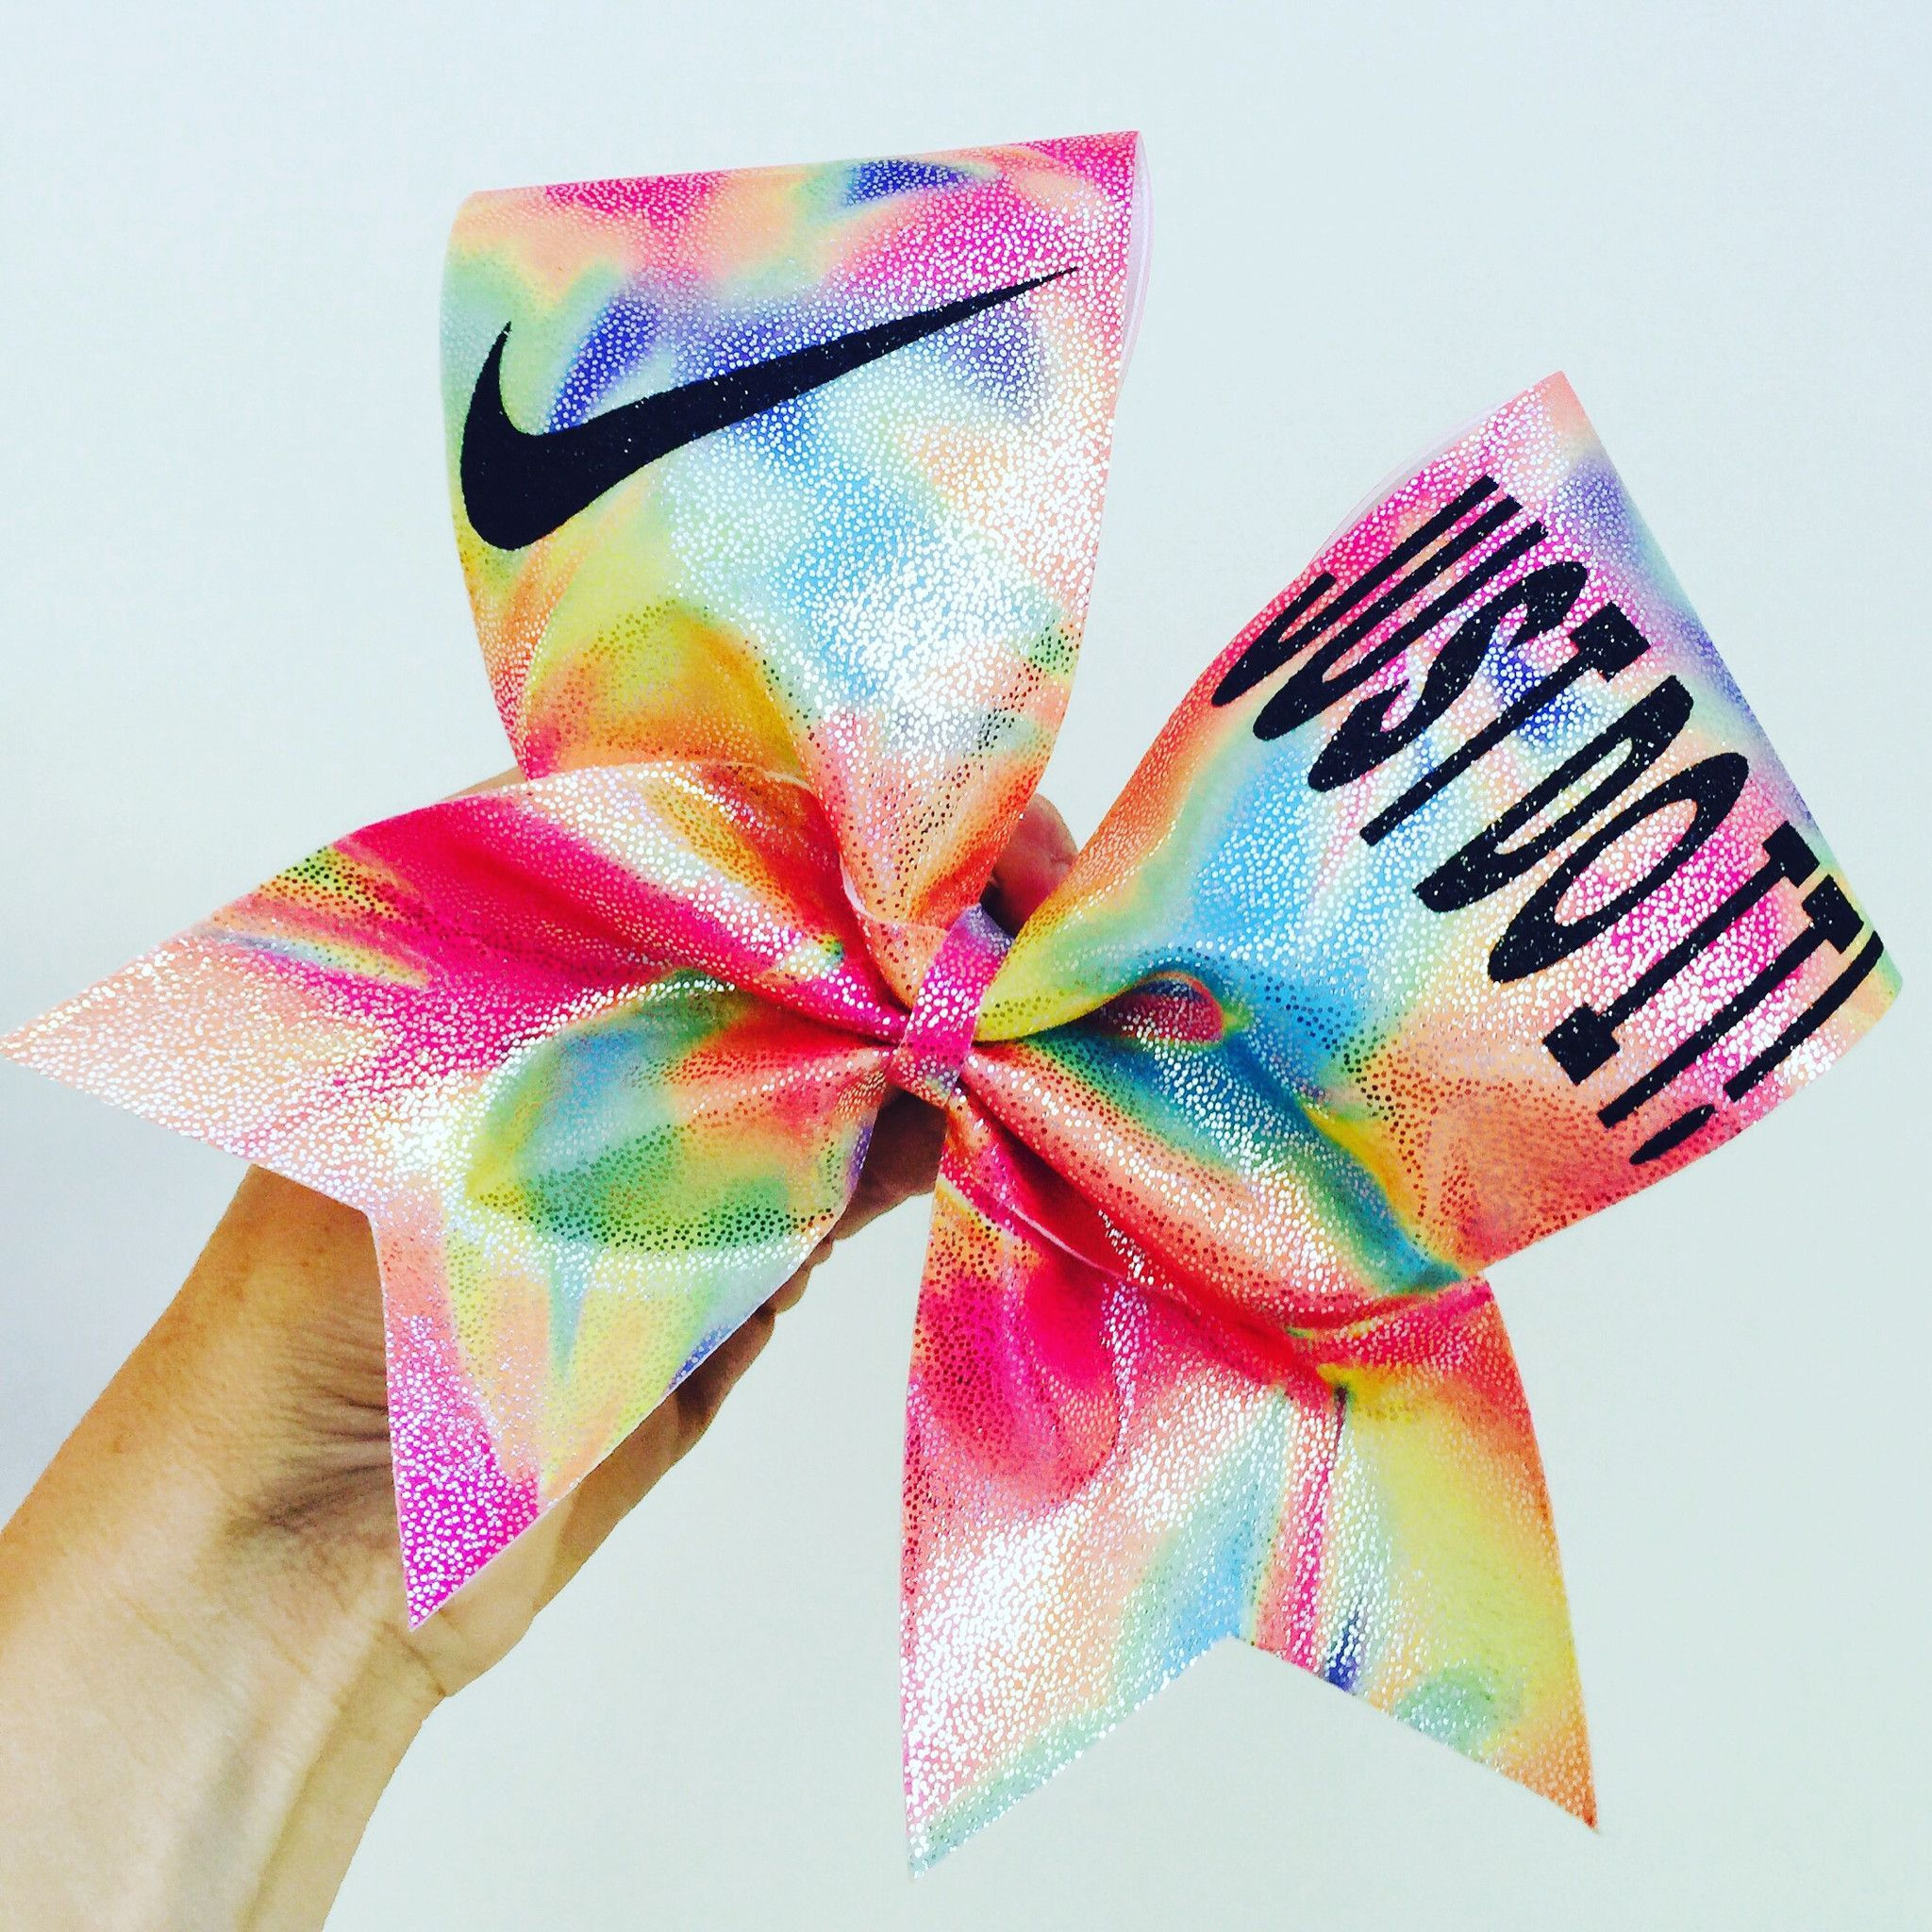 Just Do It Rainbow Metallic Holographic Sherbert Spandex Cheer Bow Tie Dye Look